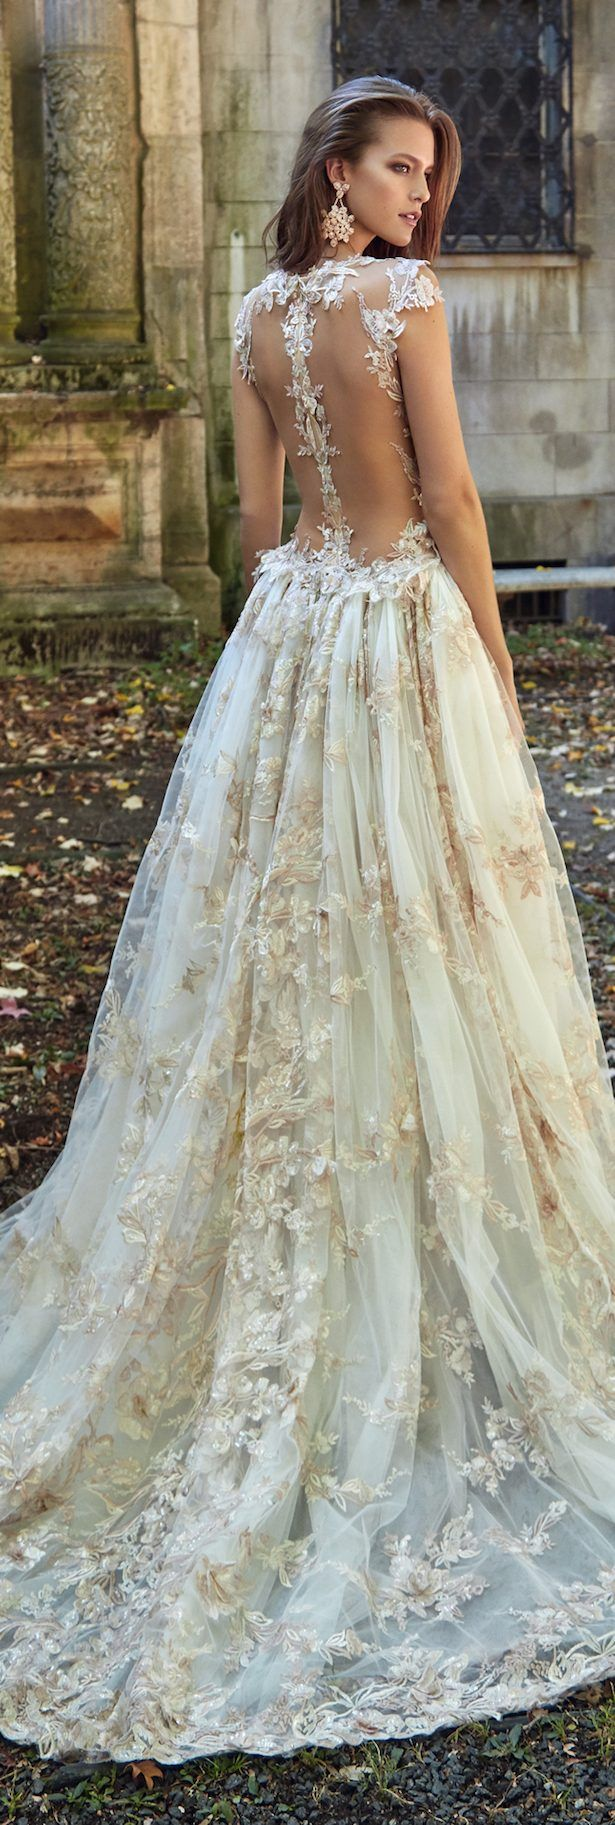 1608 Best Images About Summer Garden Party Wedding Floral Inspiration On Pinterest